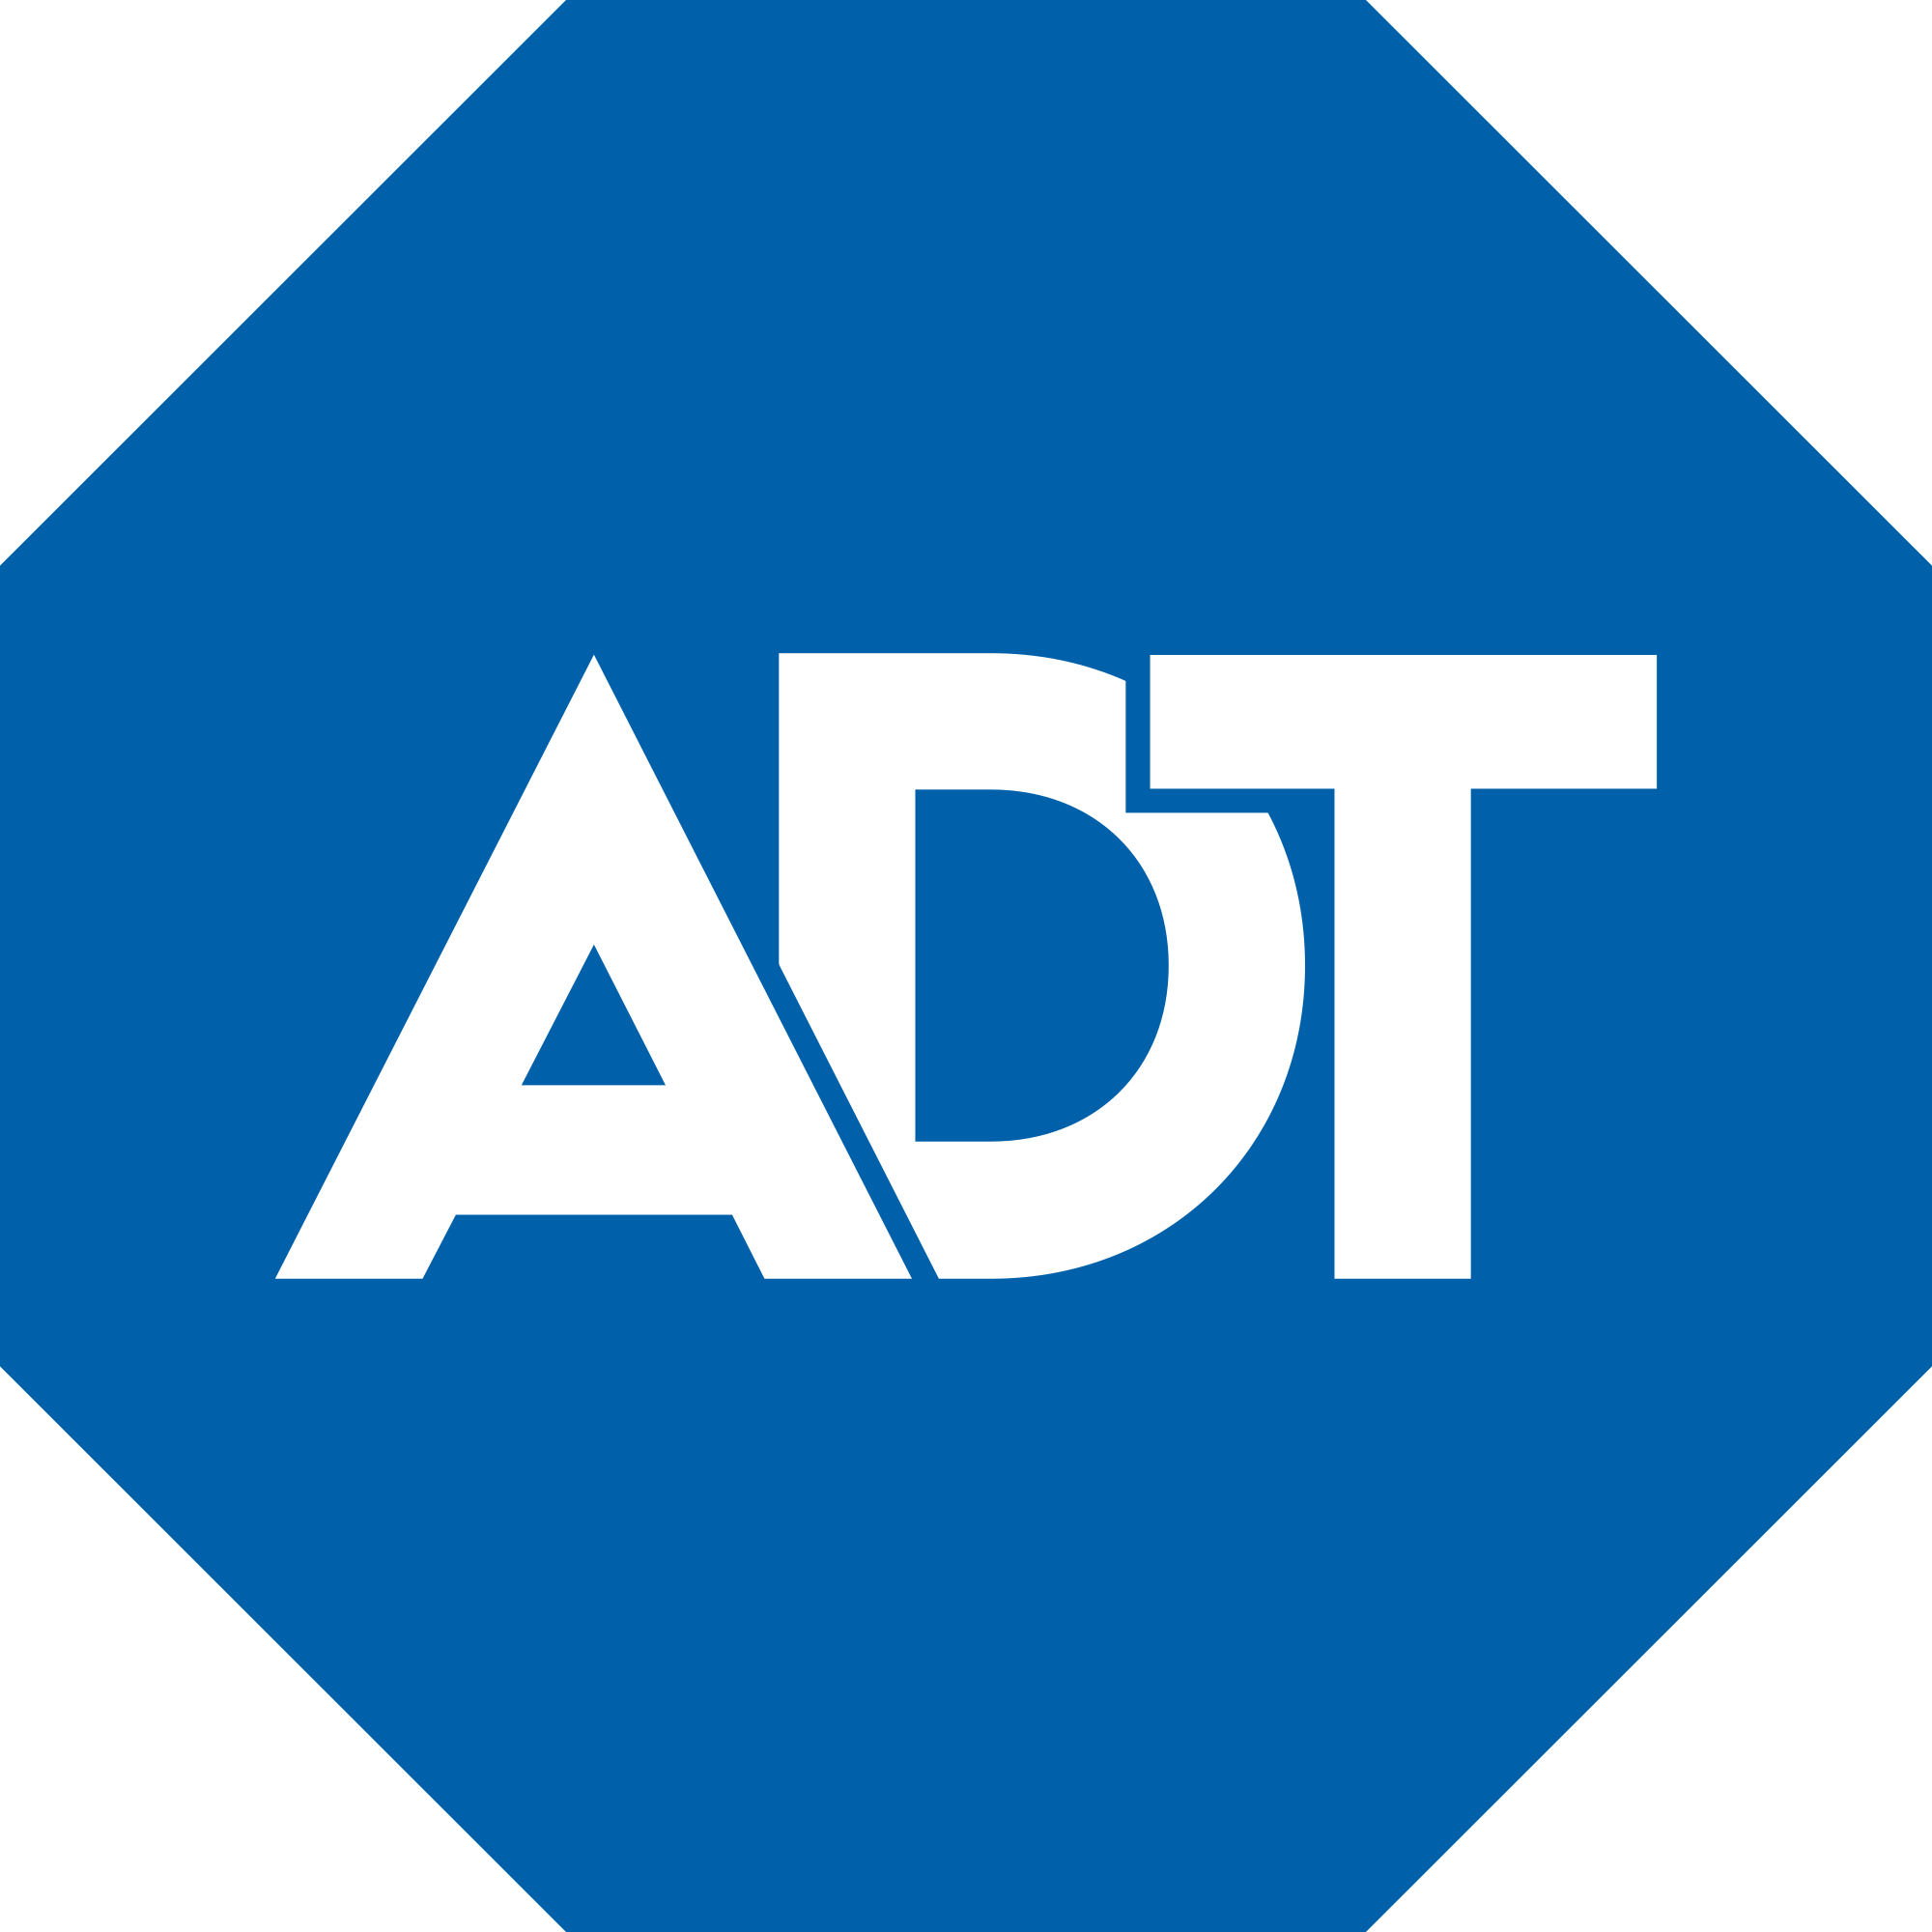 ADT Home Security Phone Number